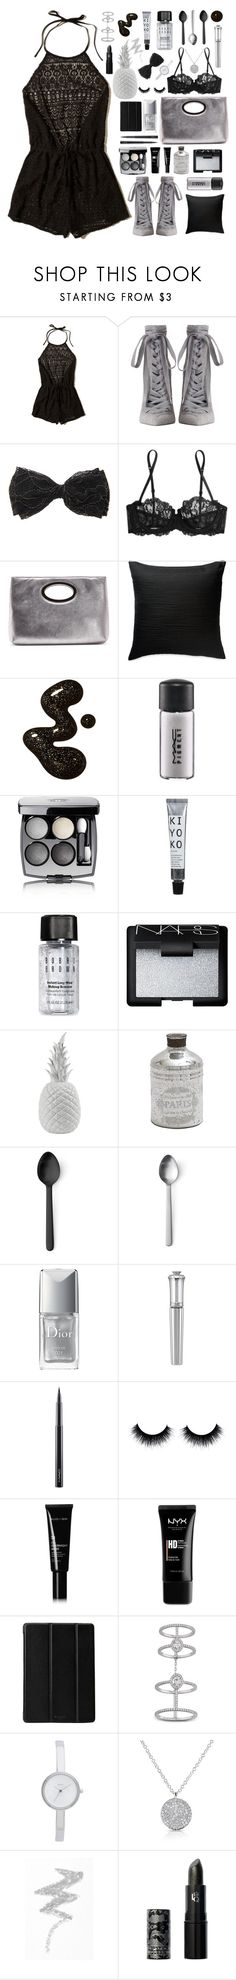 """Lucky Lace"" by erikapriscilla ❤ liked on Polyvore featuring Hollister Co., Zimmermann, La Perla, Donald J Pliner, Donna Karan, MAC Cosmetics, Chanel, Bobbi Brown Cosmetics, NARS Cosmetics and Holly's House"